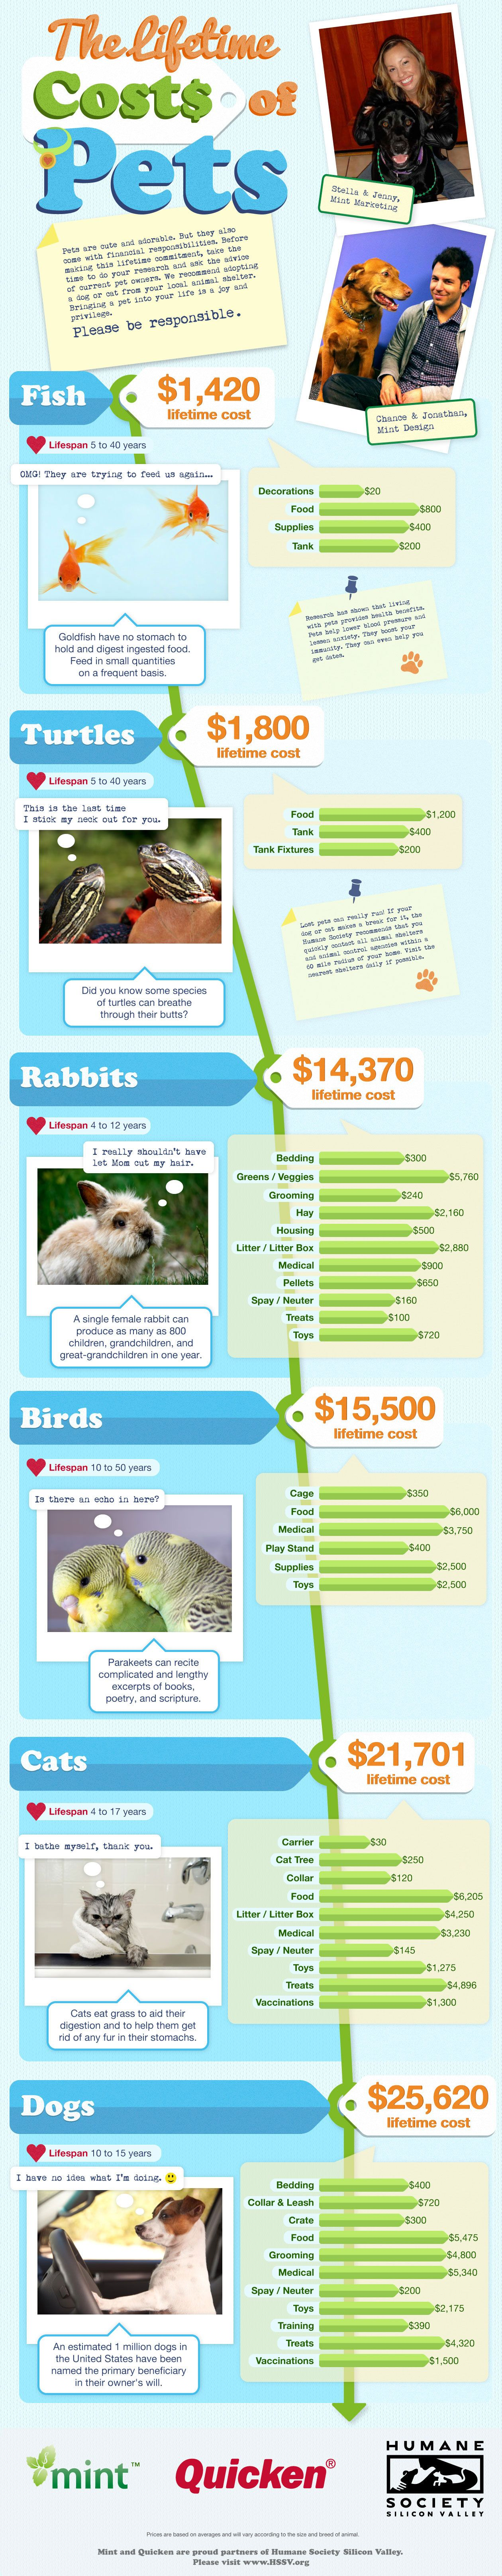 Infographic The Lifetime Costs Of Pets Animal Infographic Pet Ownership Pet Care Tips